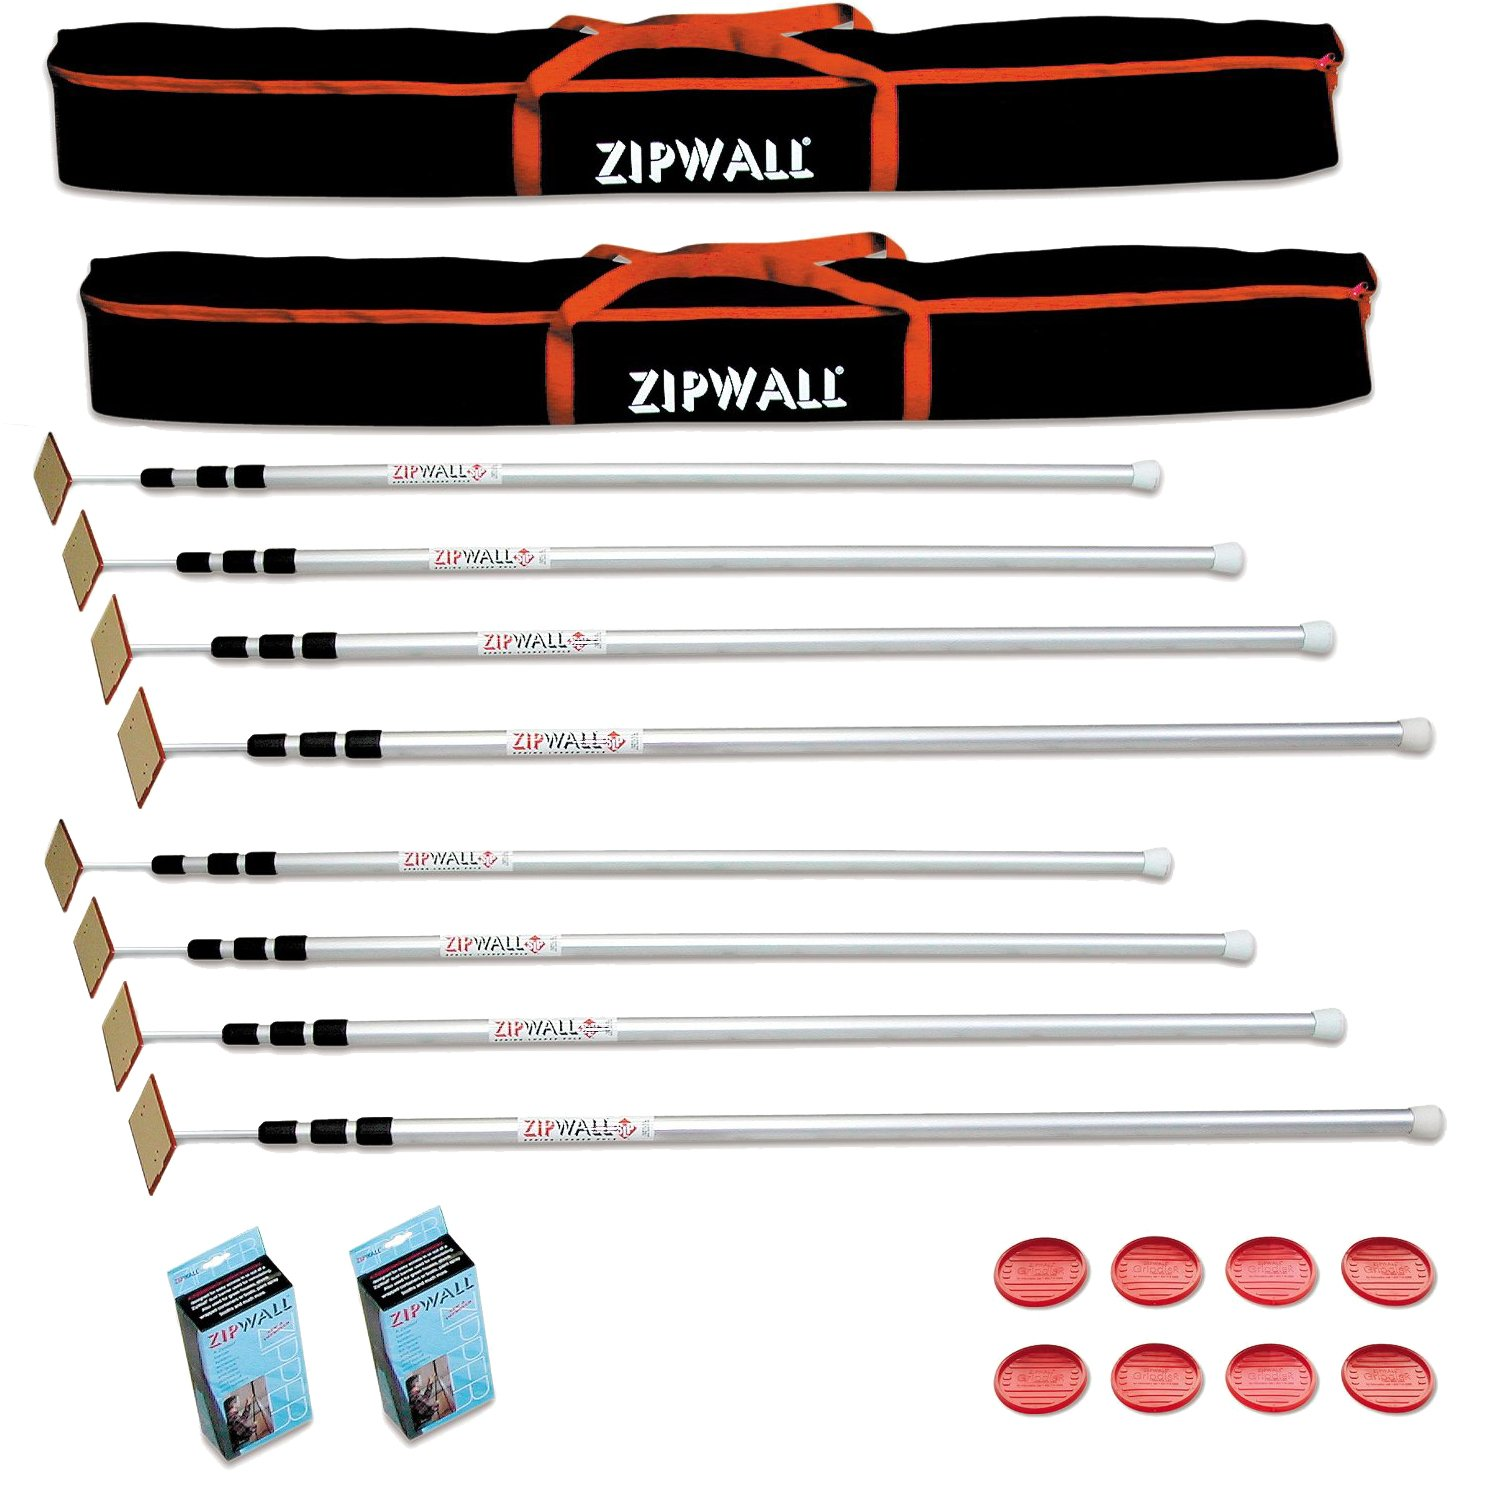 ZipWall SLP4 ZipPole 12-Foot Spring-Loaded Poles for Dust Barriers (8 Poles)